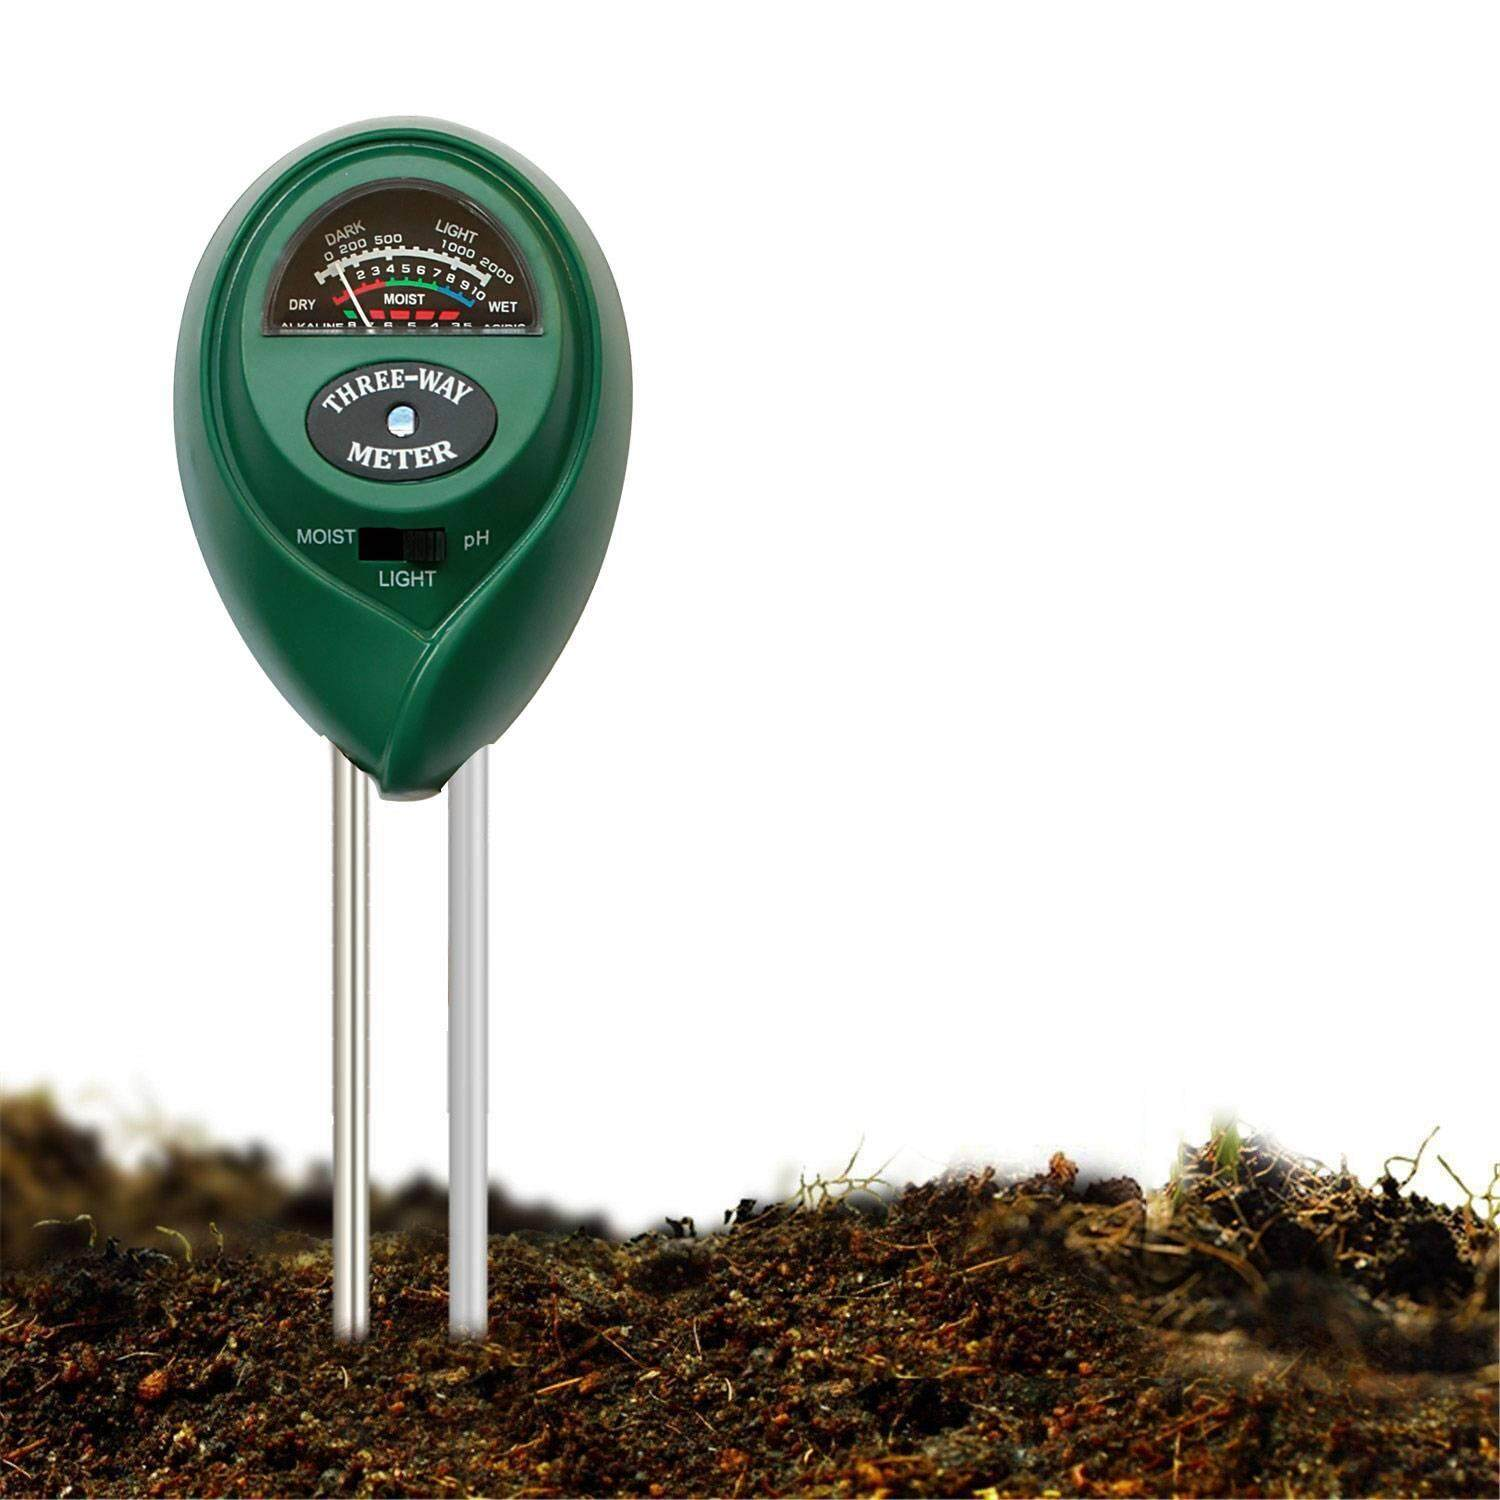 DS-Mart Soil pH Meter, 3-in-1 Soil Test Kit For Moisture, Light & pH, A Must Have For Home And Garden, Lawn, Farm, Plants, Herbs & Gardening Tools, Indoor/Outdoors Plant Care Soil Tester (No Battery Needed)